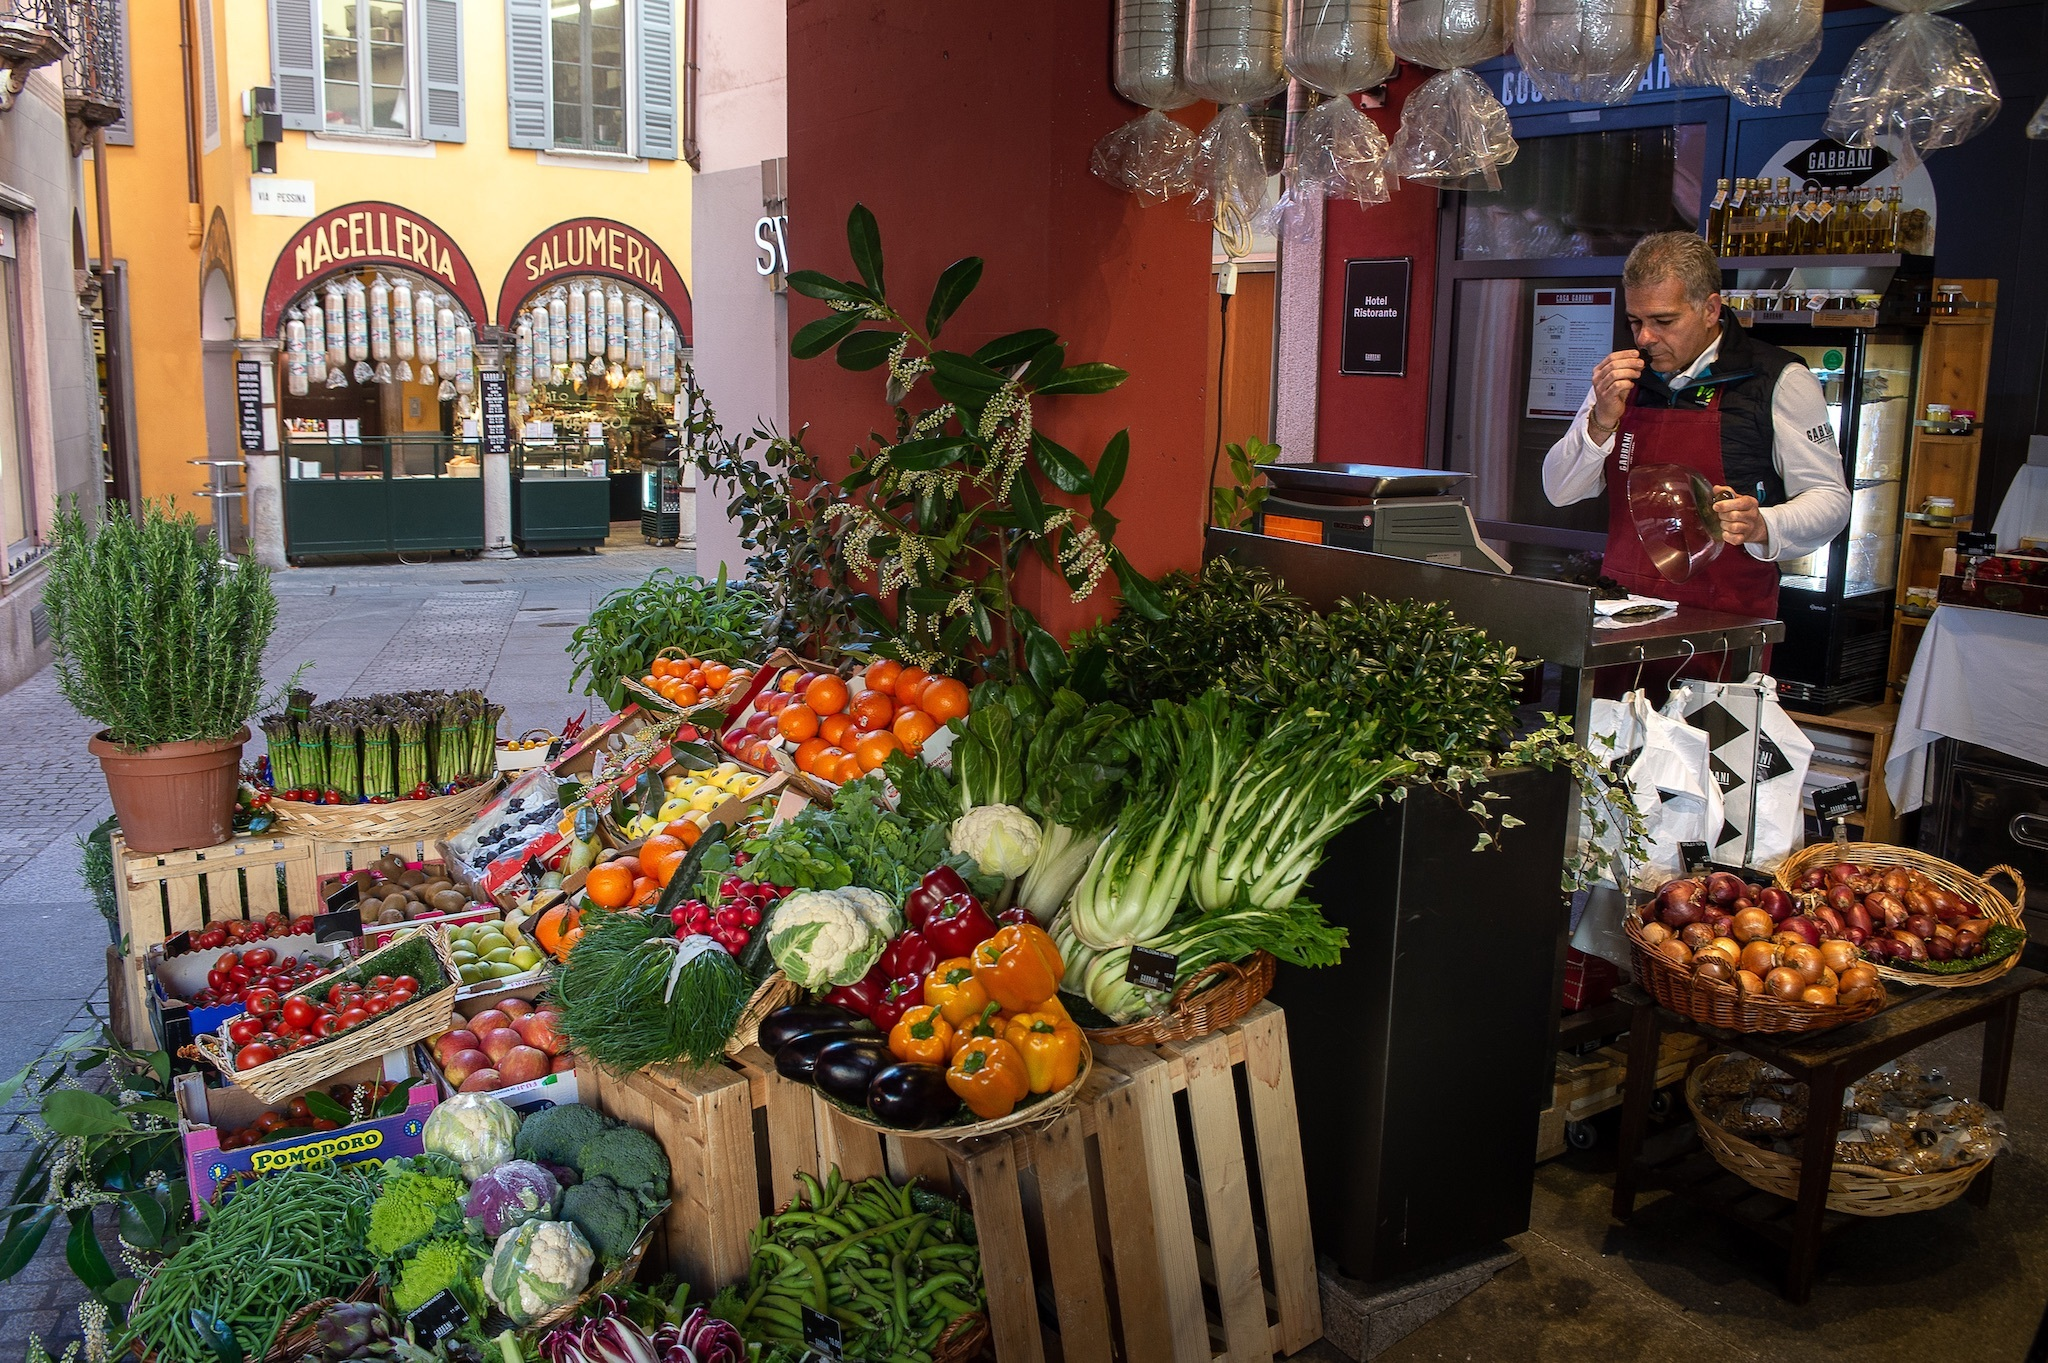 Traditional products to try for a taste of Ticino